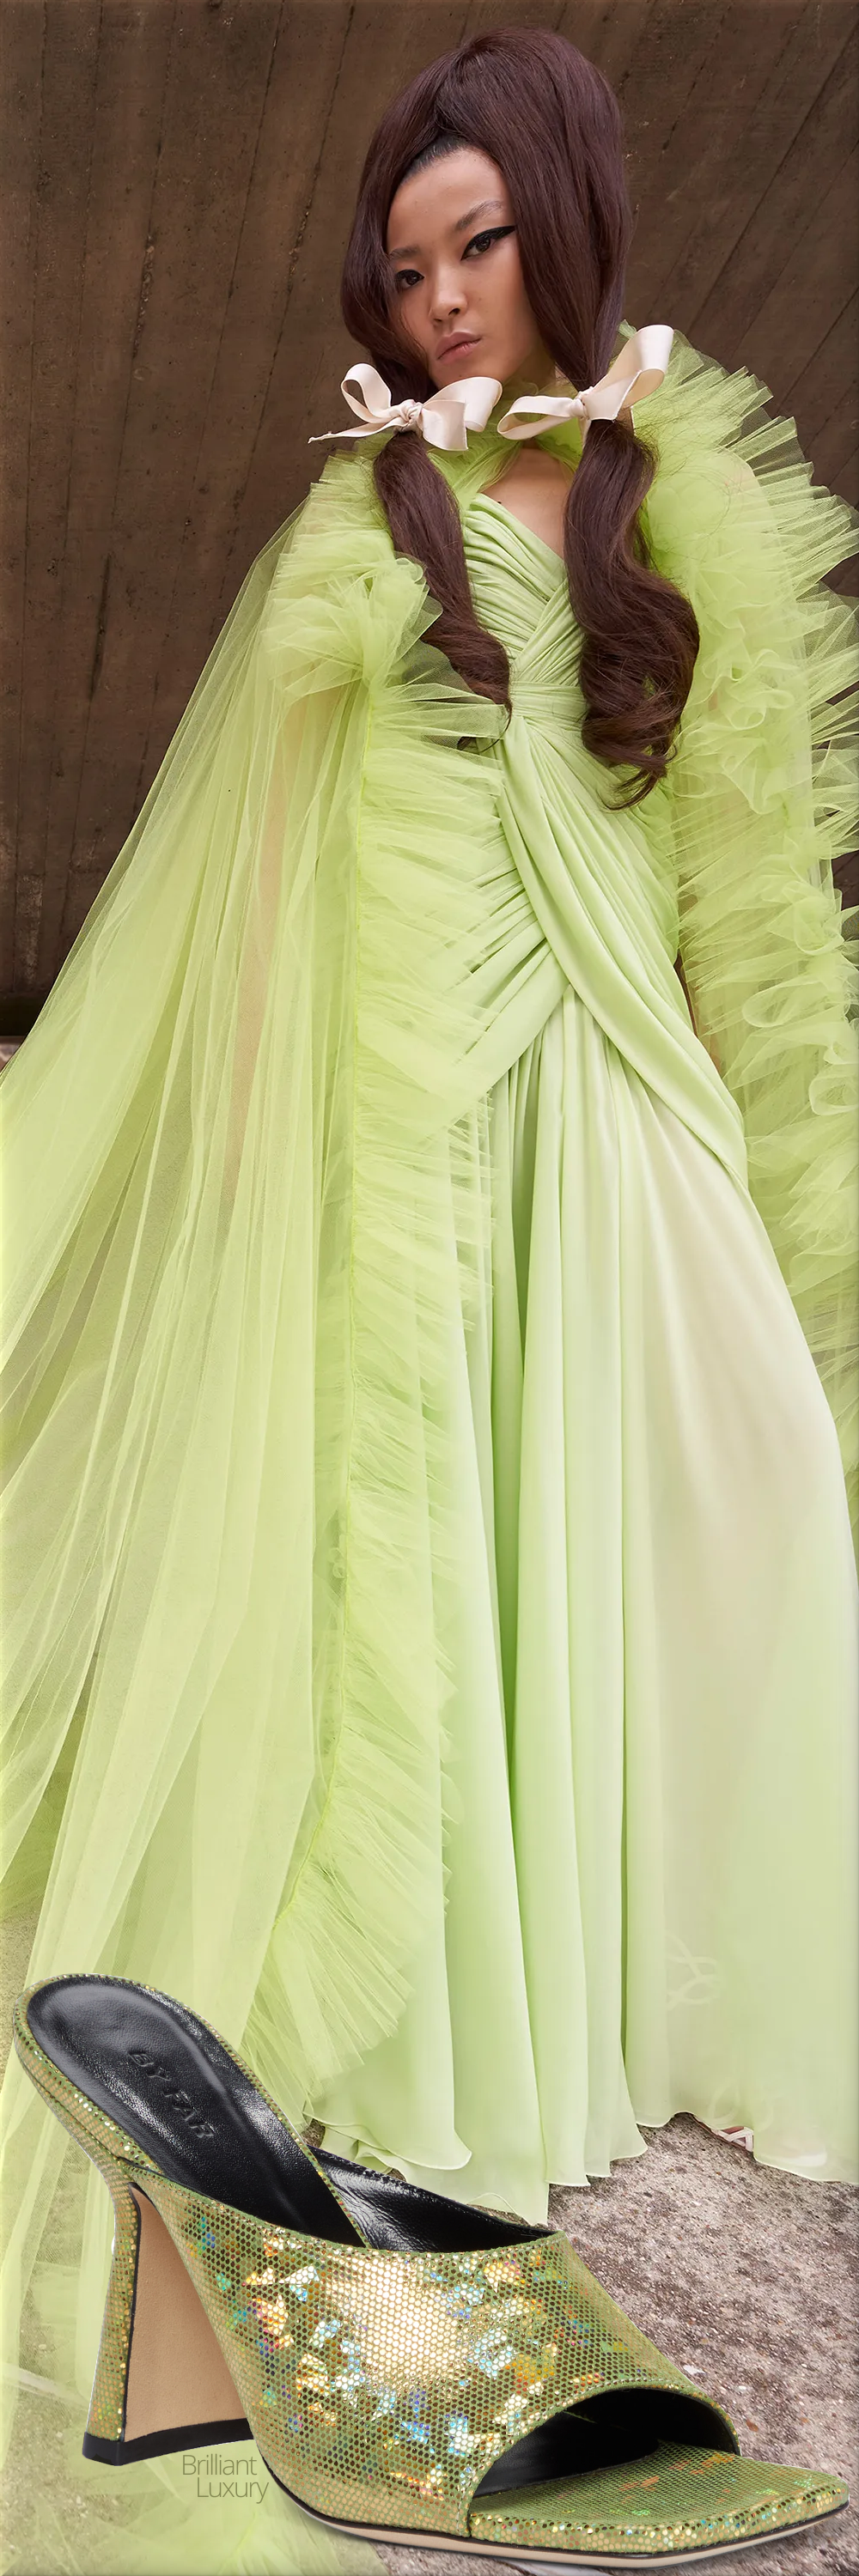 Giambattista Valli green couture gown fall 2021 & By Far Zaya disco green holographic leather mule sandals #shoes #fashion #green #brilliantluxury